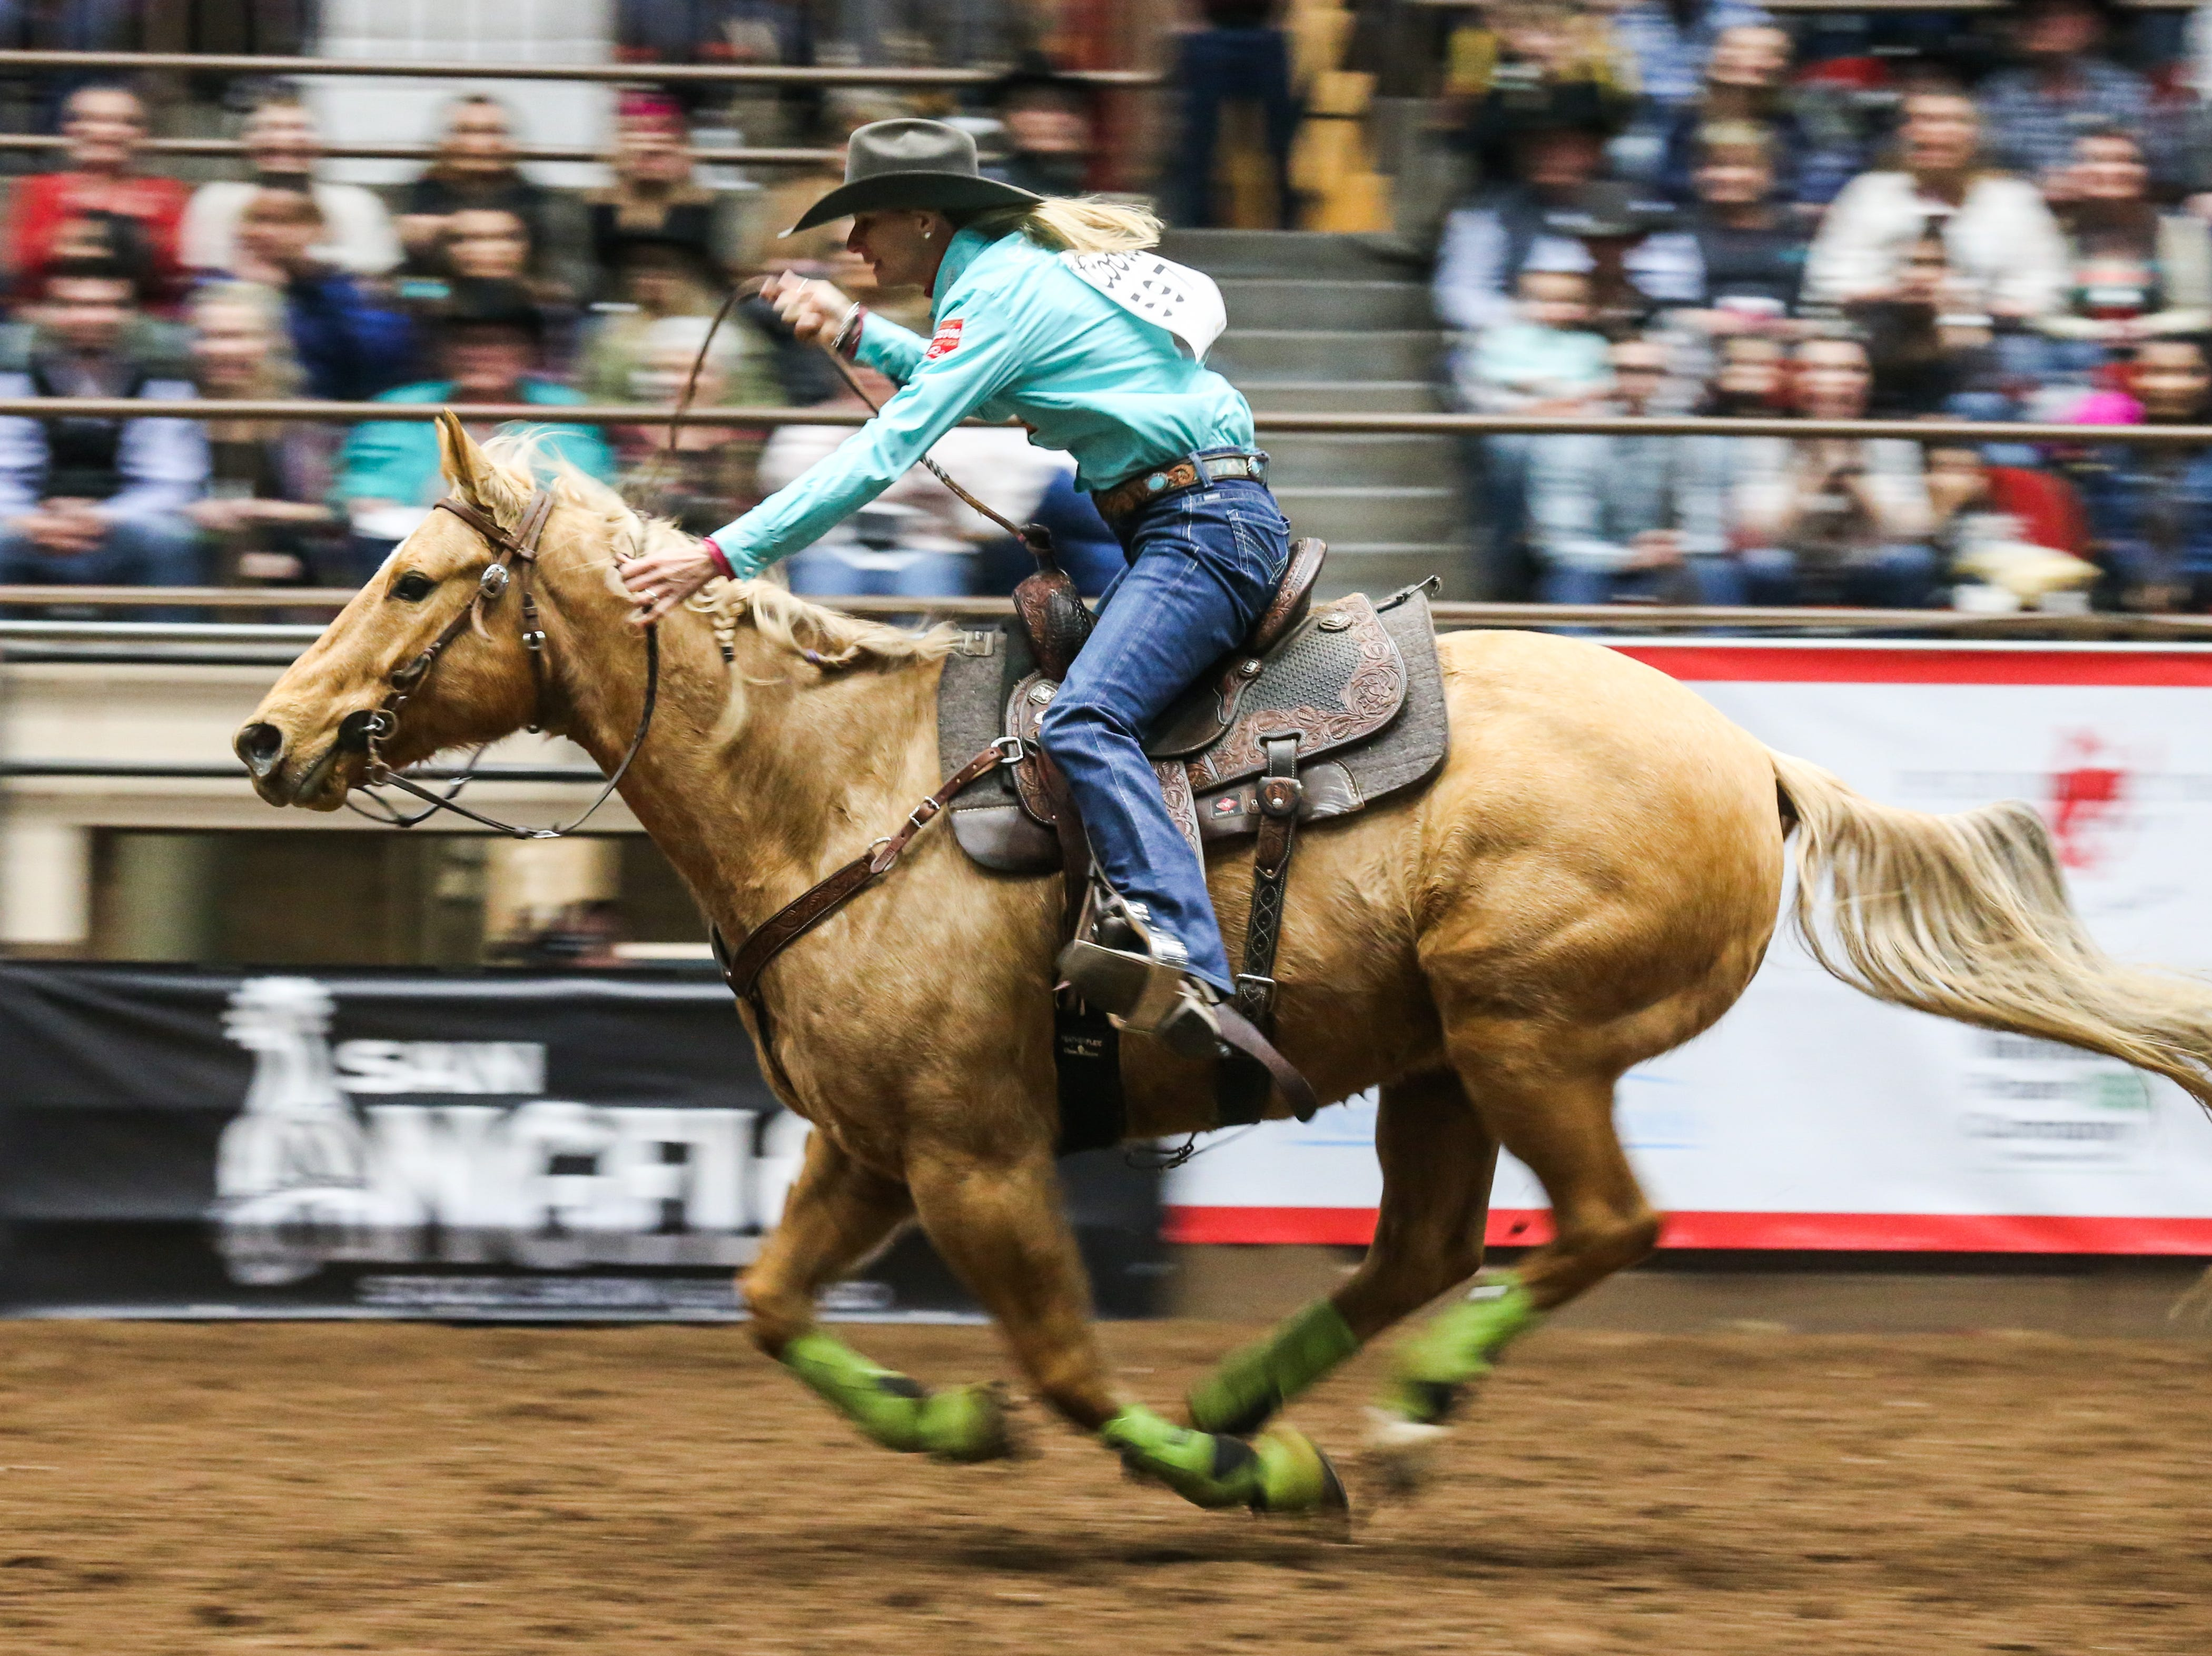 Sherry Cervi races barrels during the 3rd performance of the San Angelo Stock Show & Rodeo Saturday, Feb. 2, 2019, at Foster Communications Coliseum.